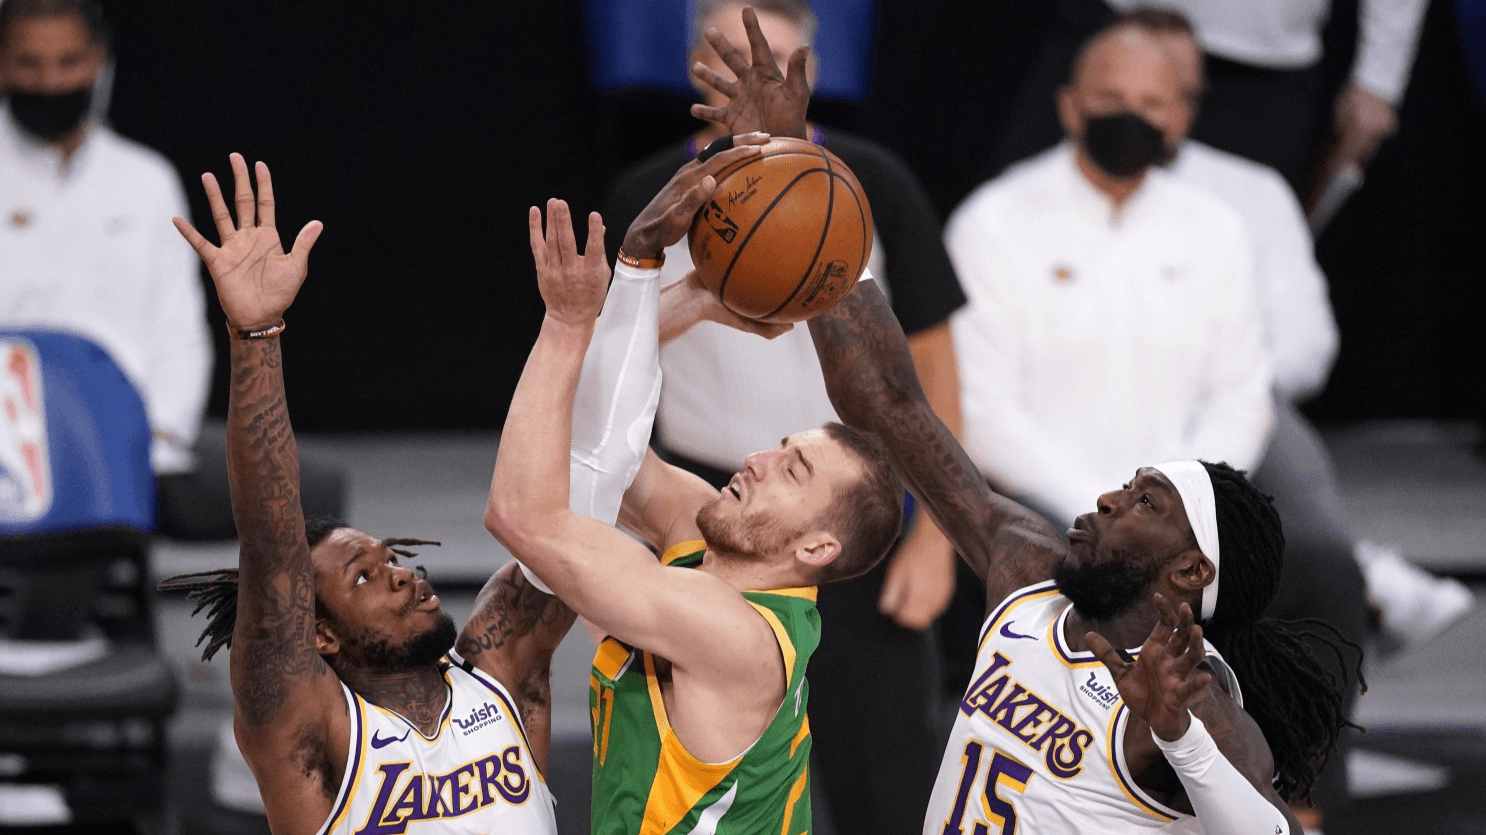 Lakers vs Jazz Betting Preview: NBA's Top Team is Just 3-7 ATS This Month